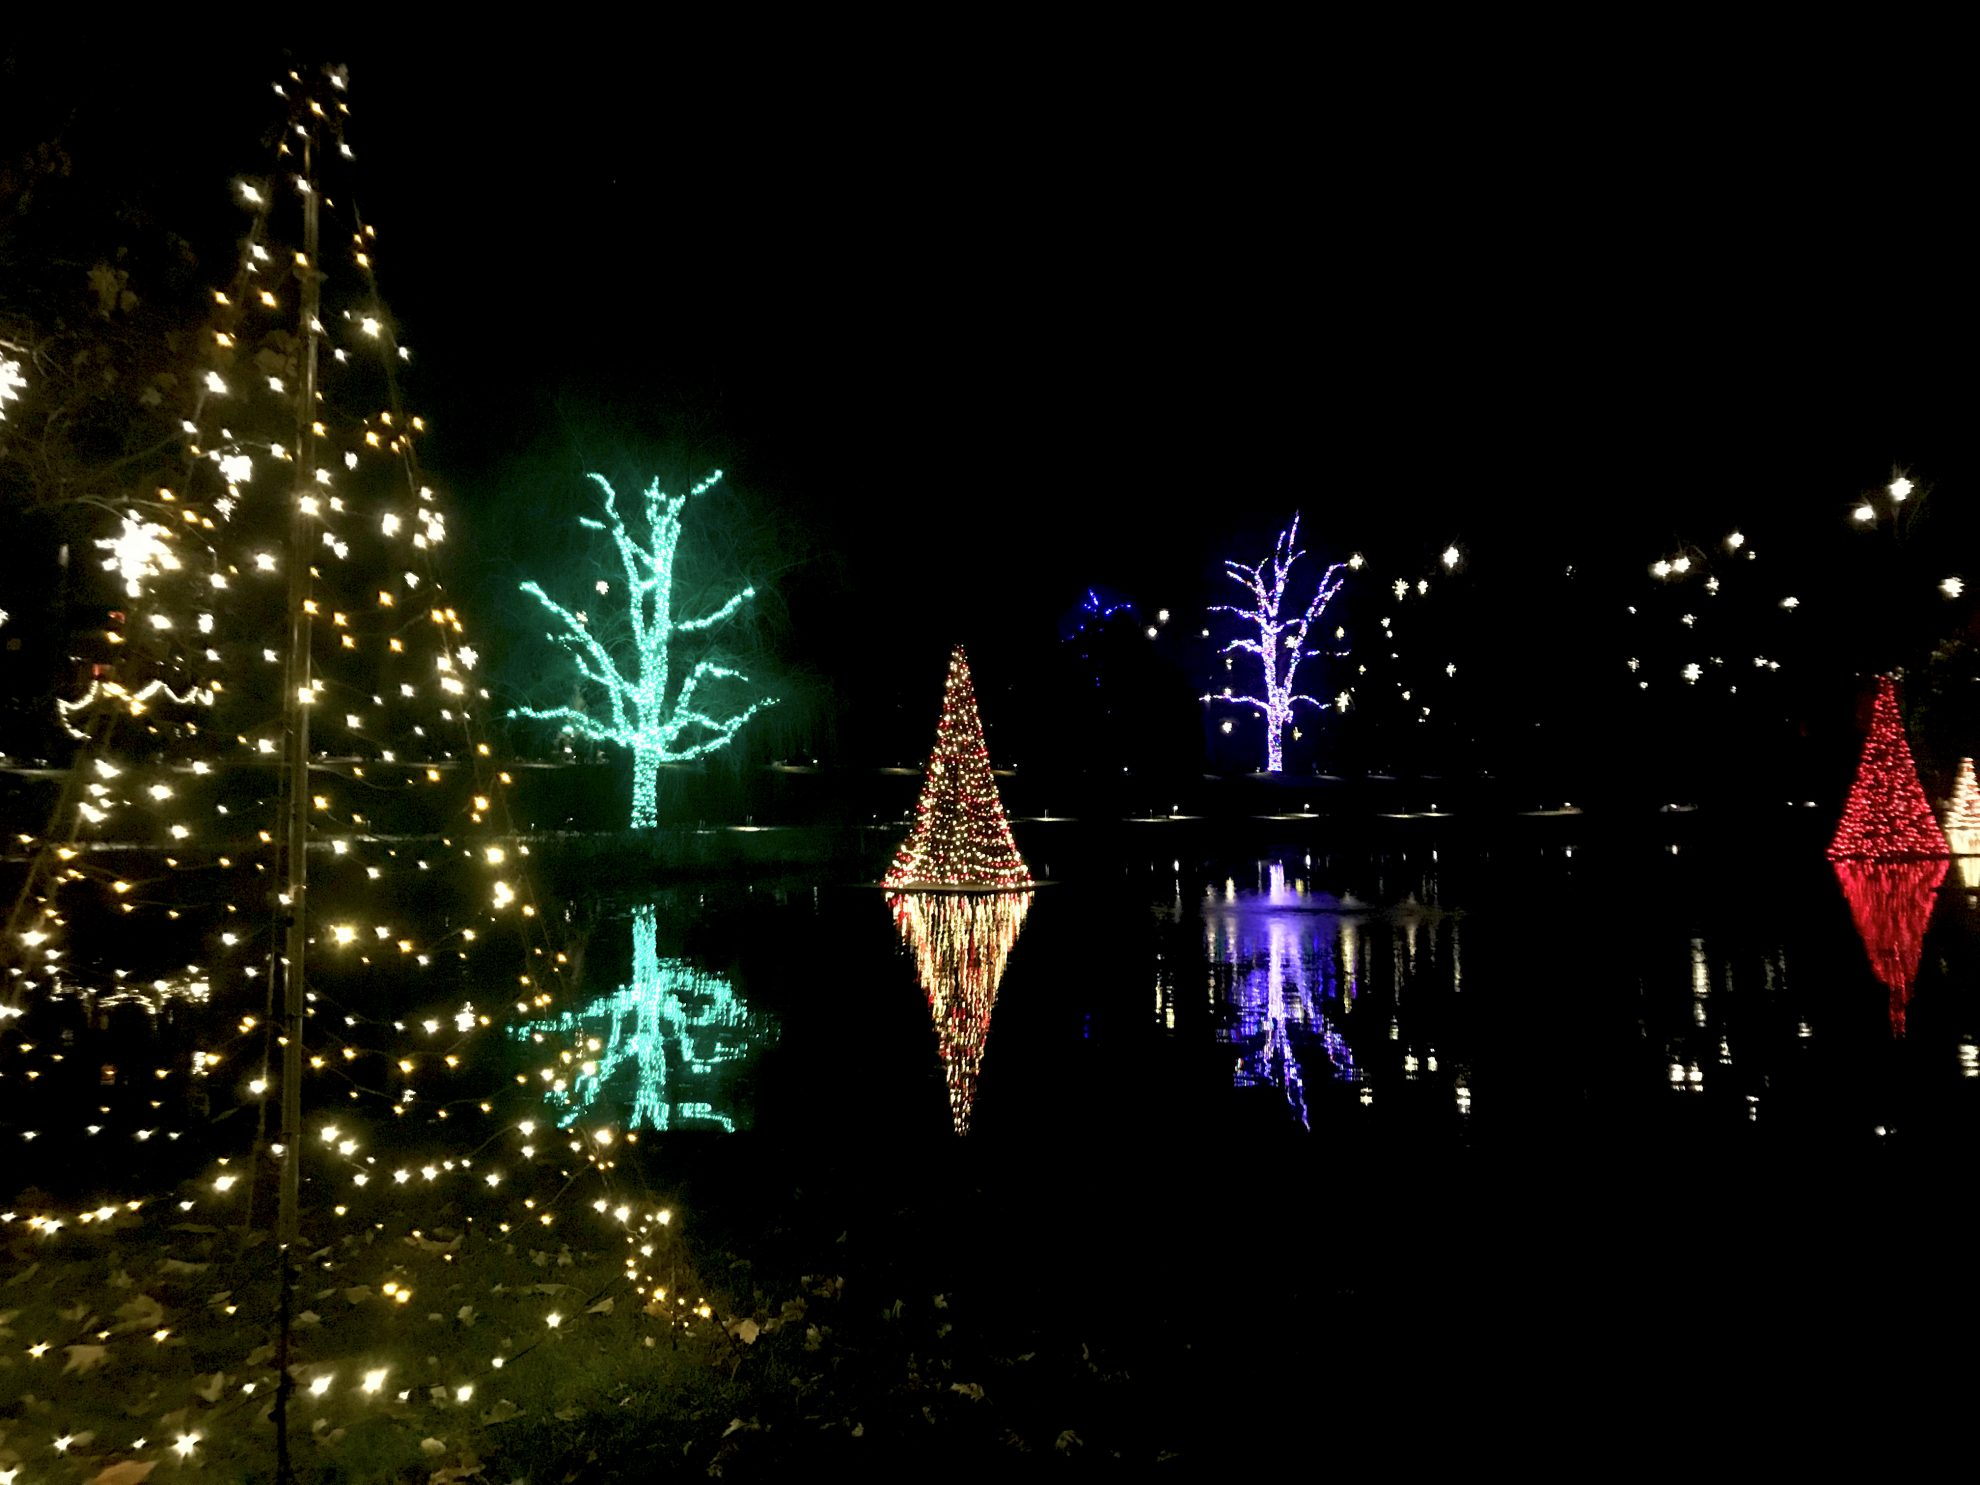 Longwood Gardens Holiday Lights with colorful, lighted trees